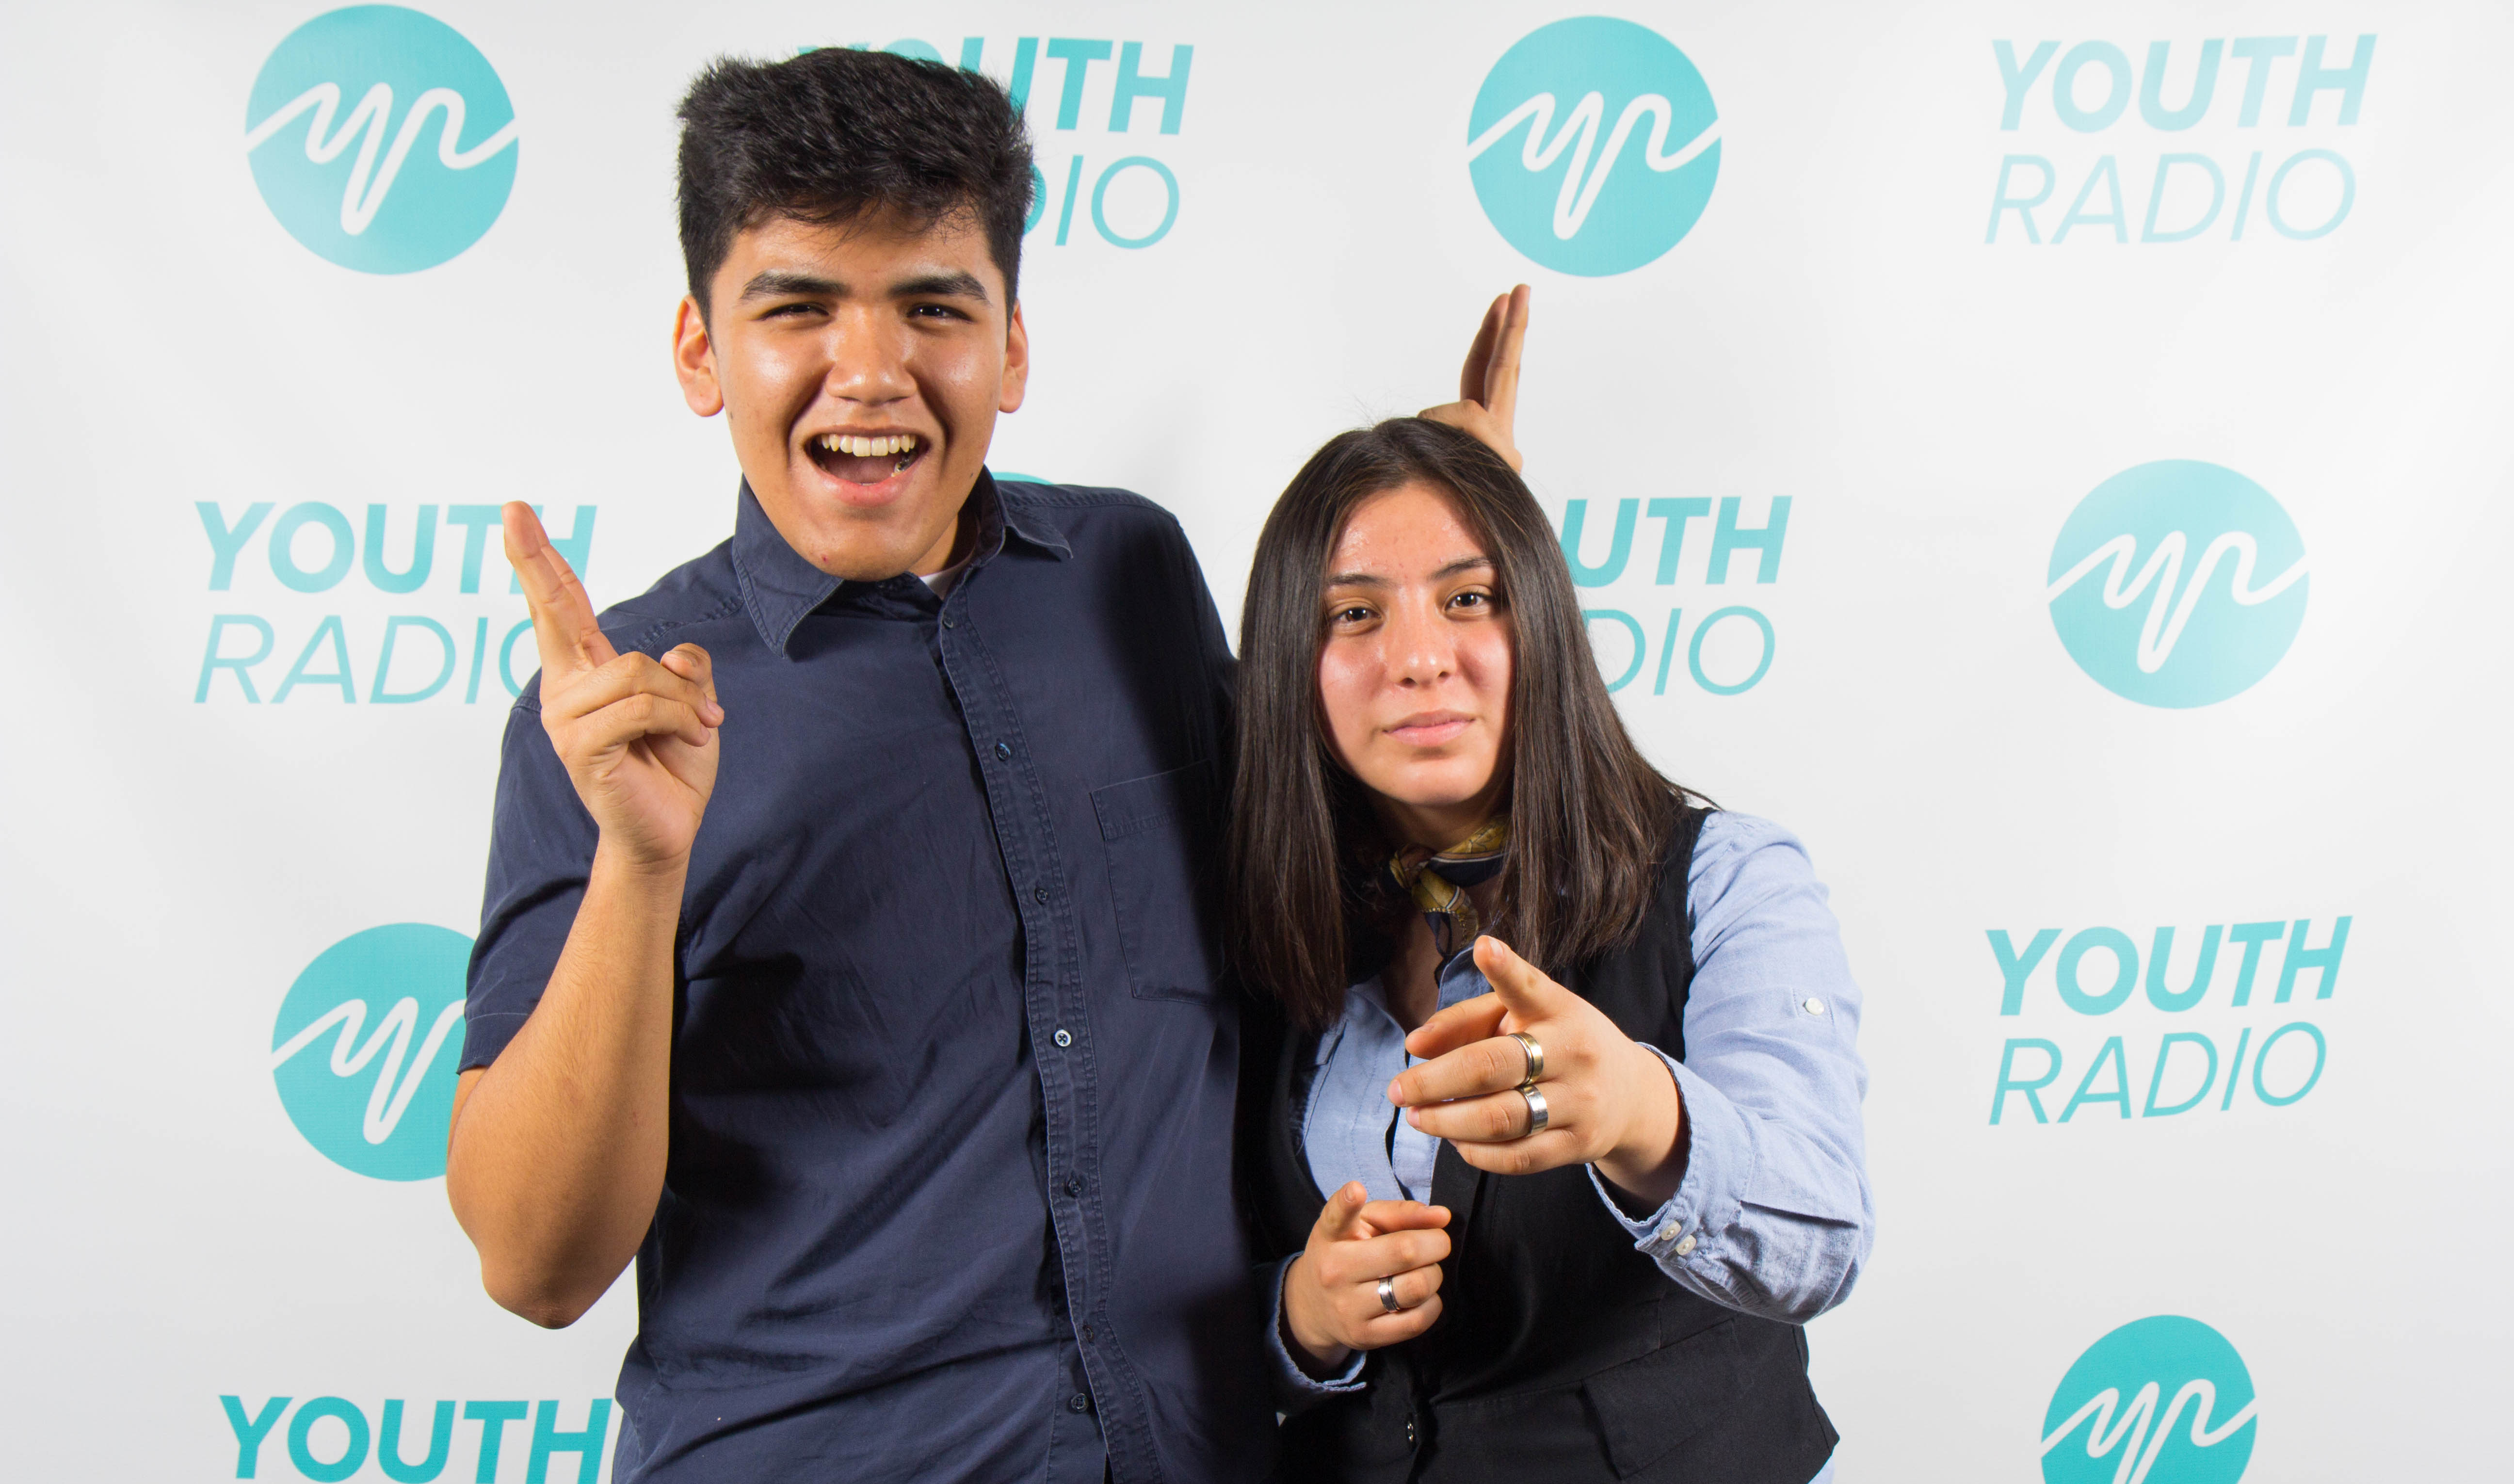 Got A Great Story Idea? Here's How To Pitch To Youth Radio